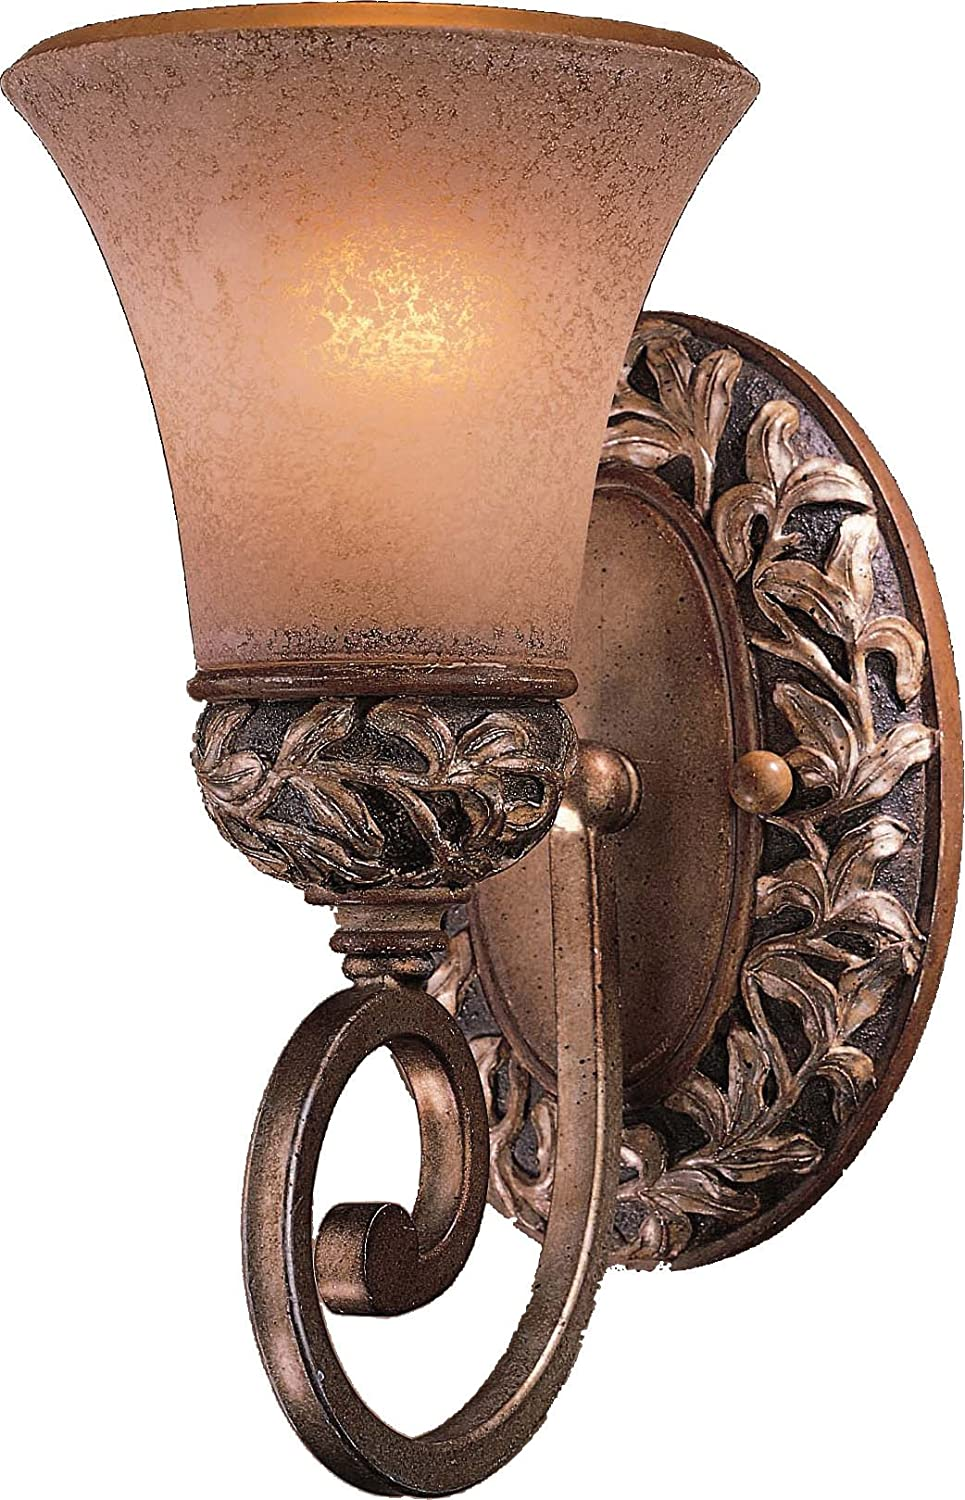 Minka Lavery Wall Sconce Lighting 5551-477, Salon Grand Glass Damp Bath Vanity Fixture, 1 Light, 100 Watts, Patina